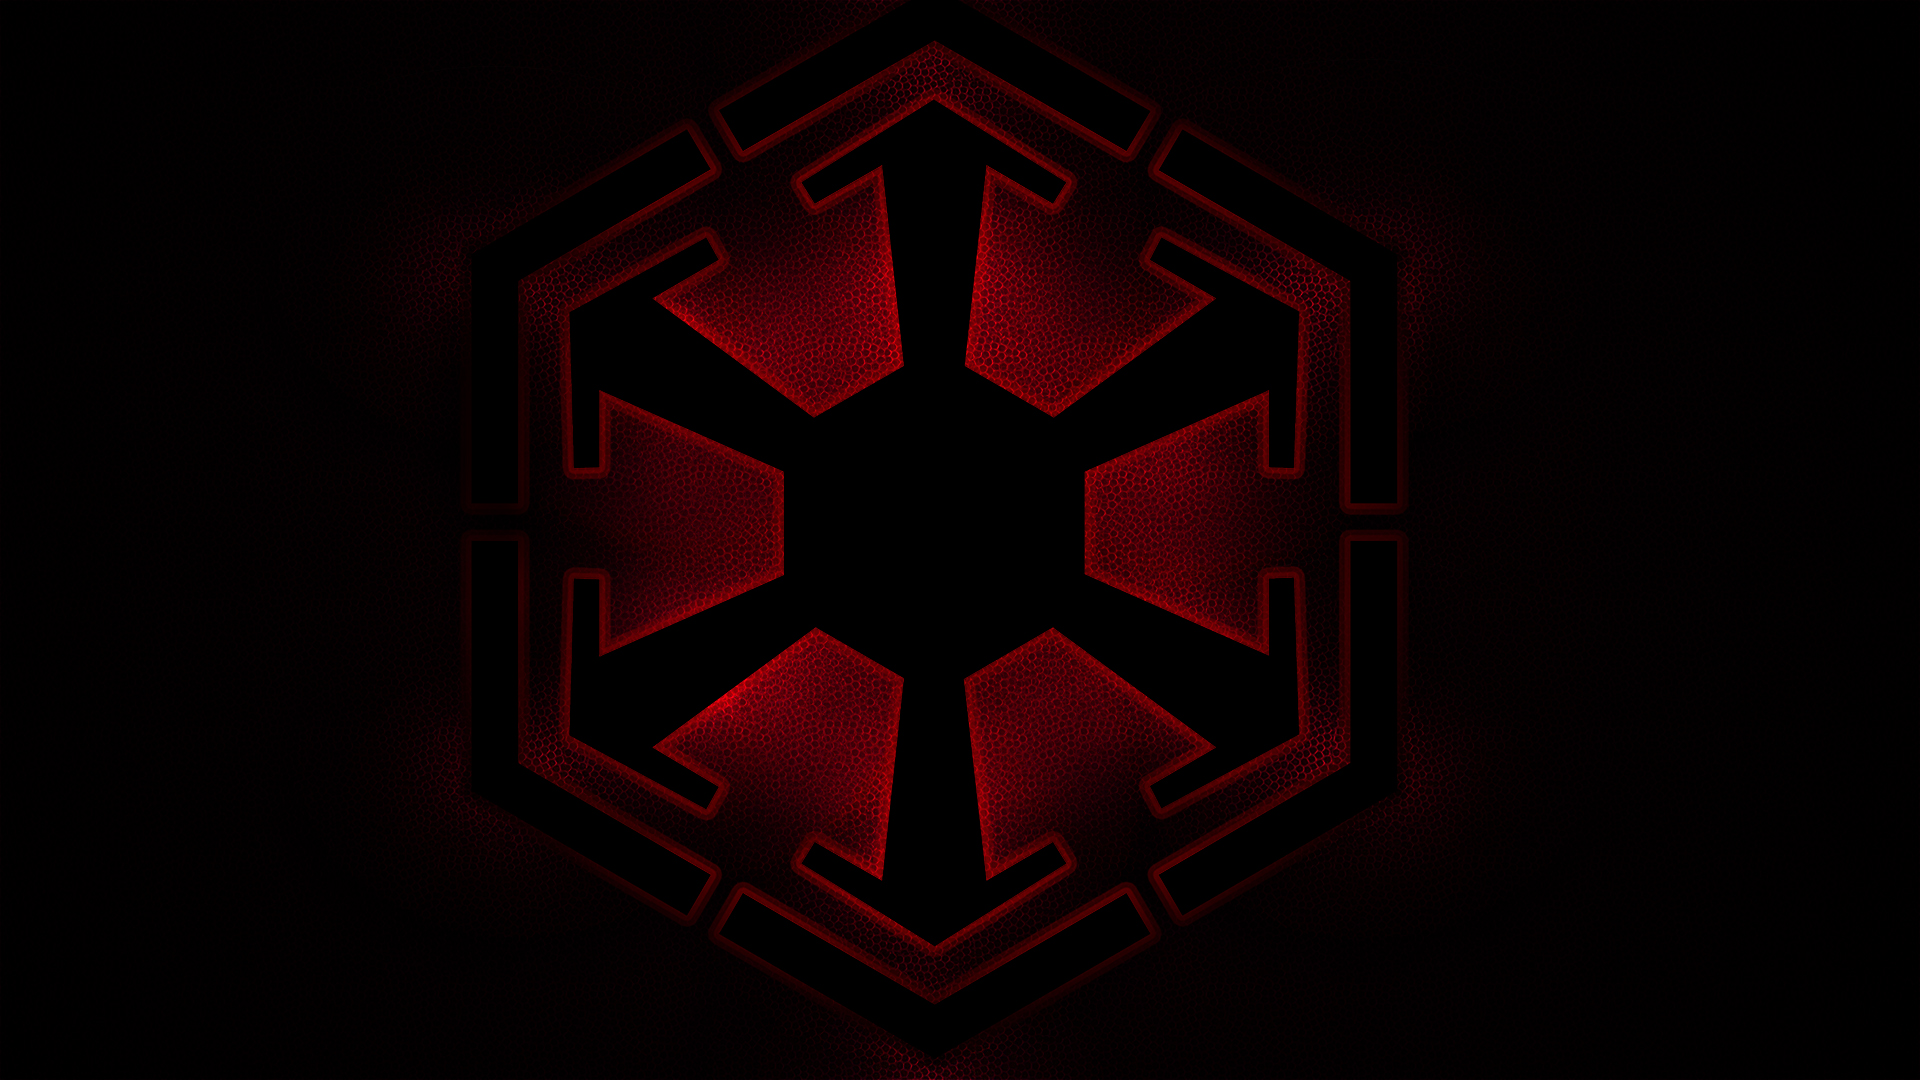 Star Wars Empire Wallpapers Desktop Background | Movies Wallpapers ...